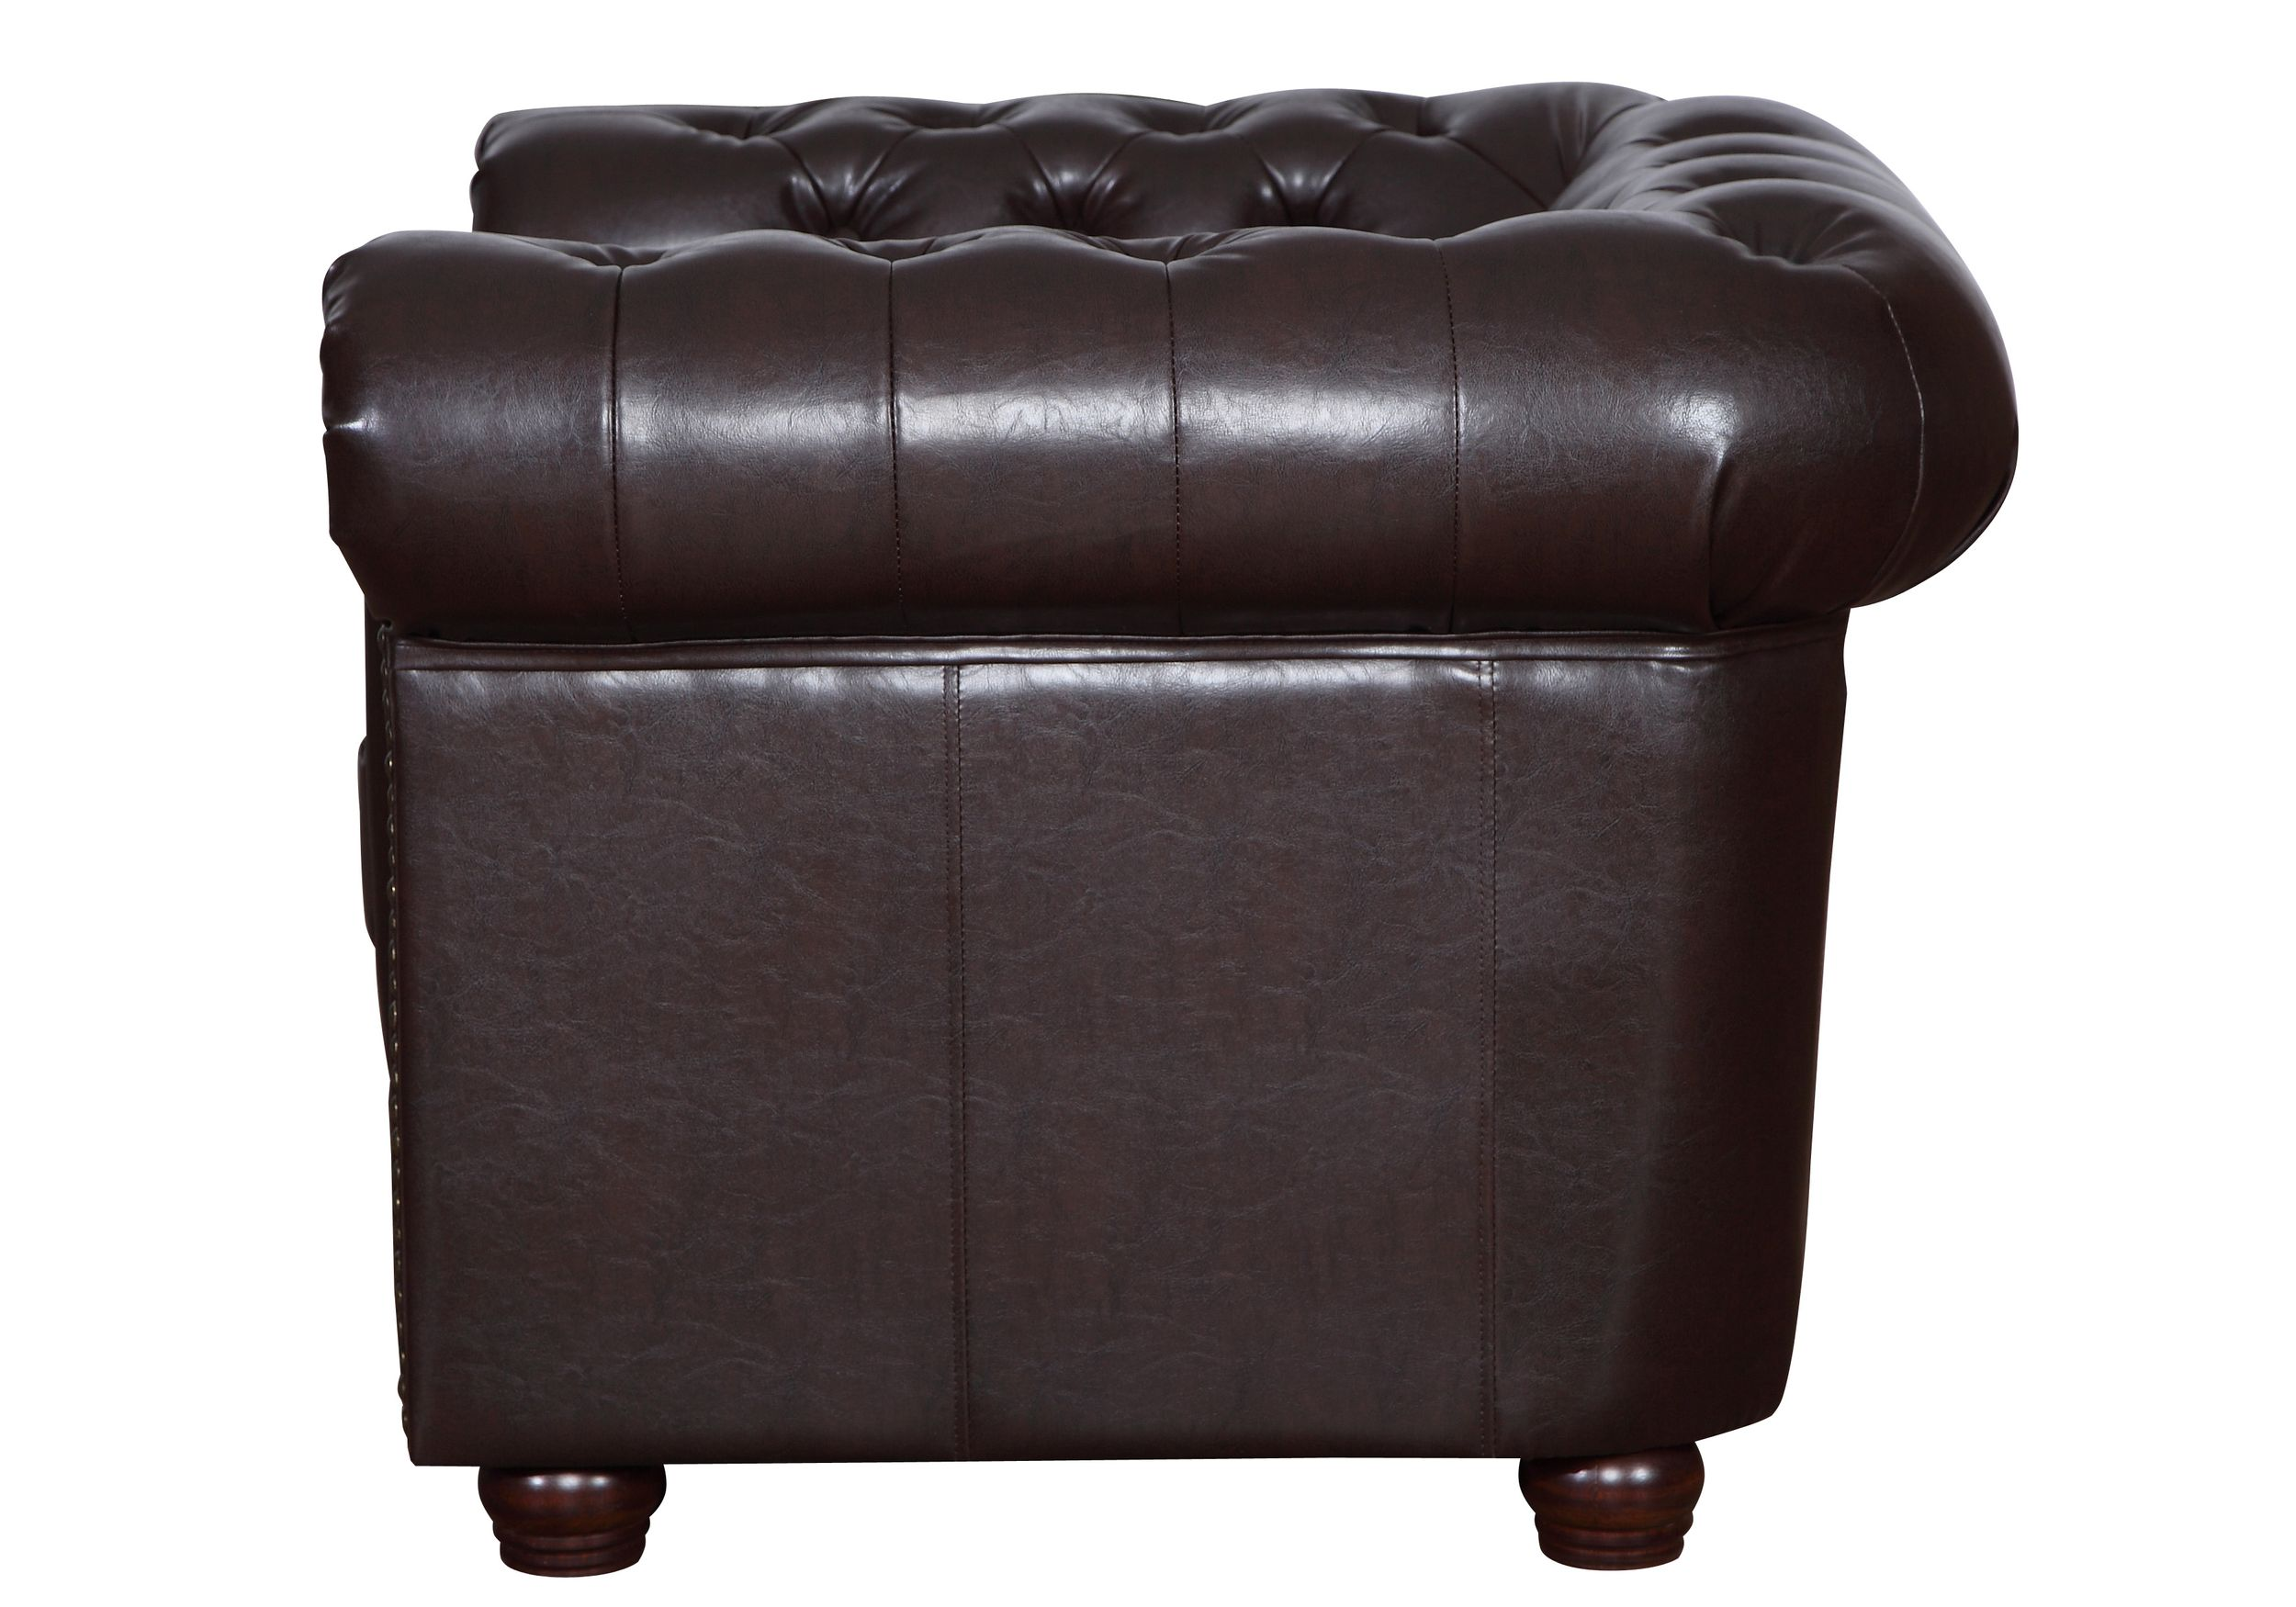 Vintage Sessel Braun Chesterfield Sessel 1 Sitzer In Kunstleder Vintage Braun Couch Polstersofa Sofa